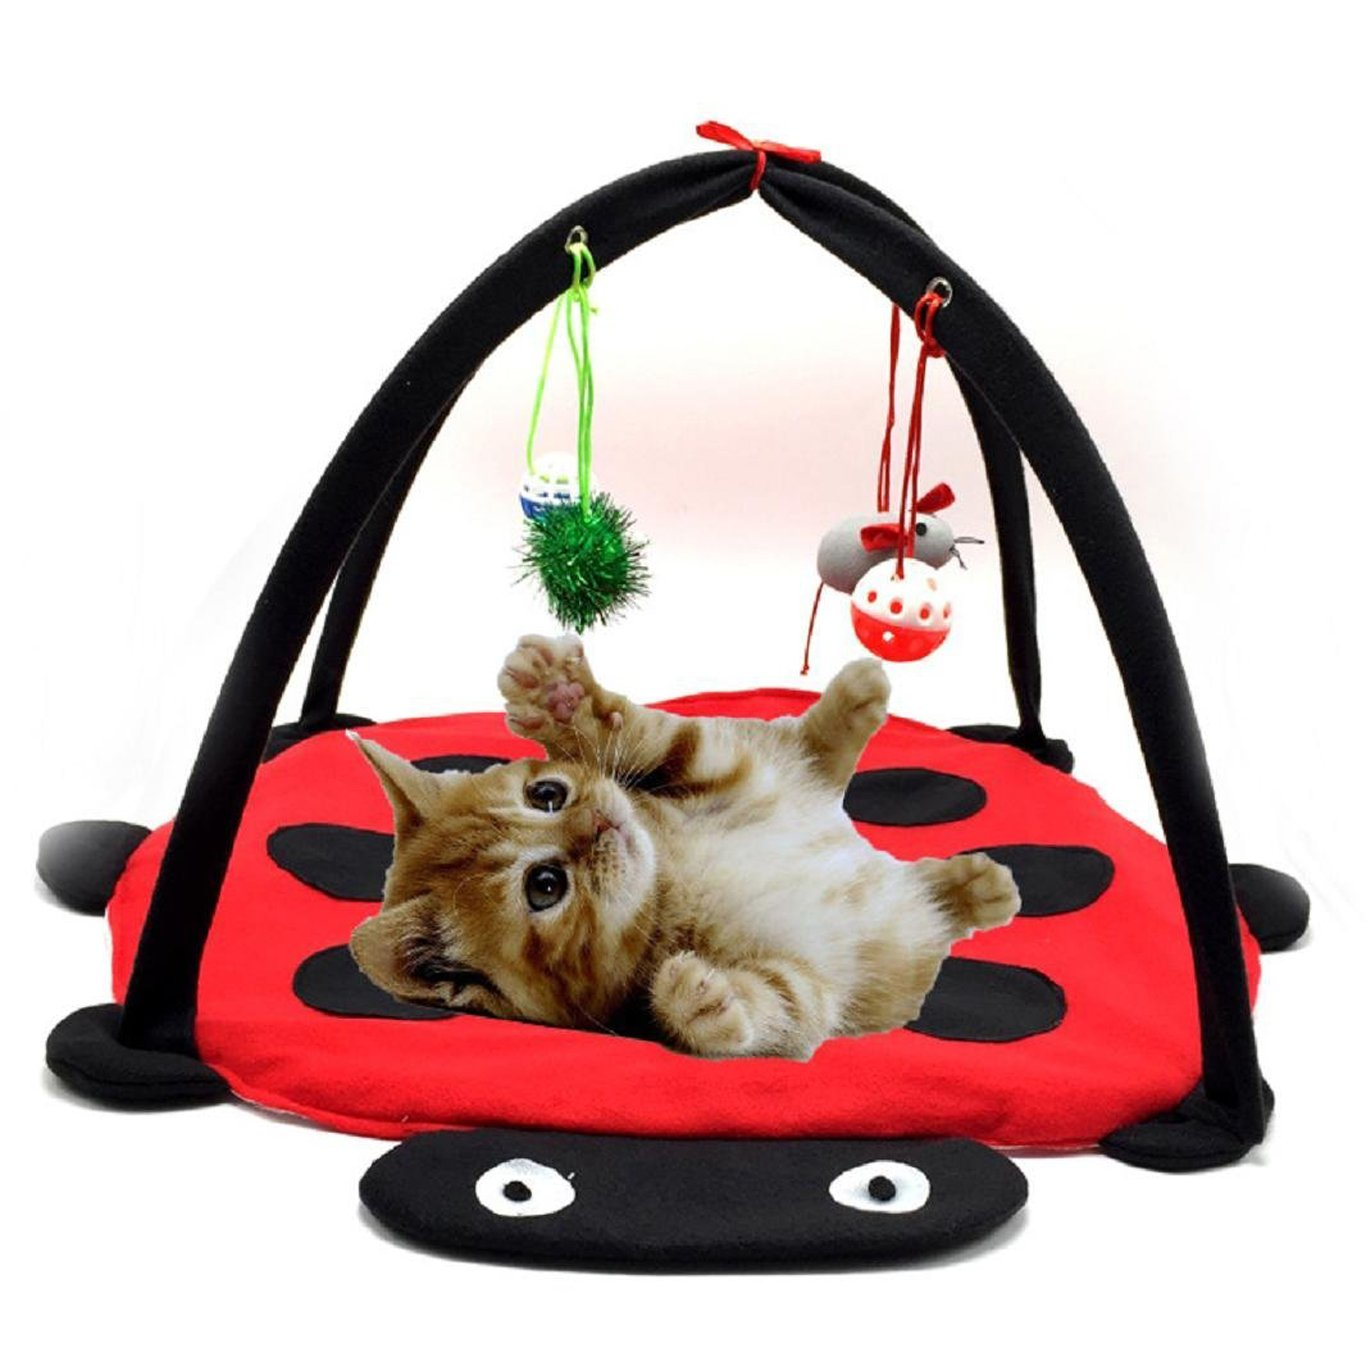 Mufeng Pet Playing Bed Blanket Mat with Hanging Toys - Balls Funny Cat Toy